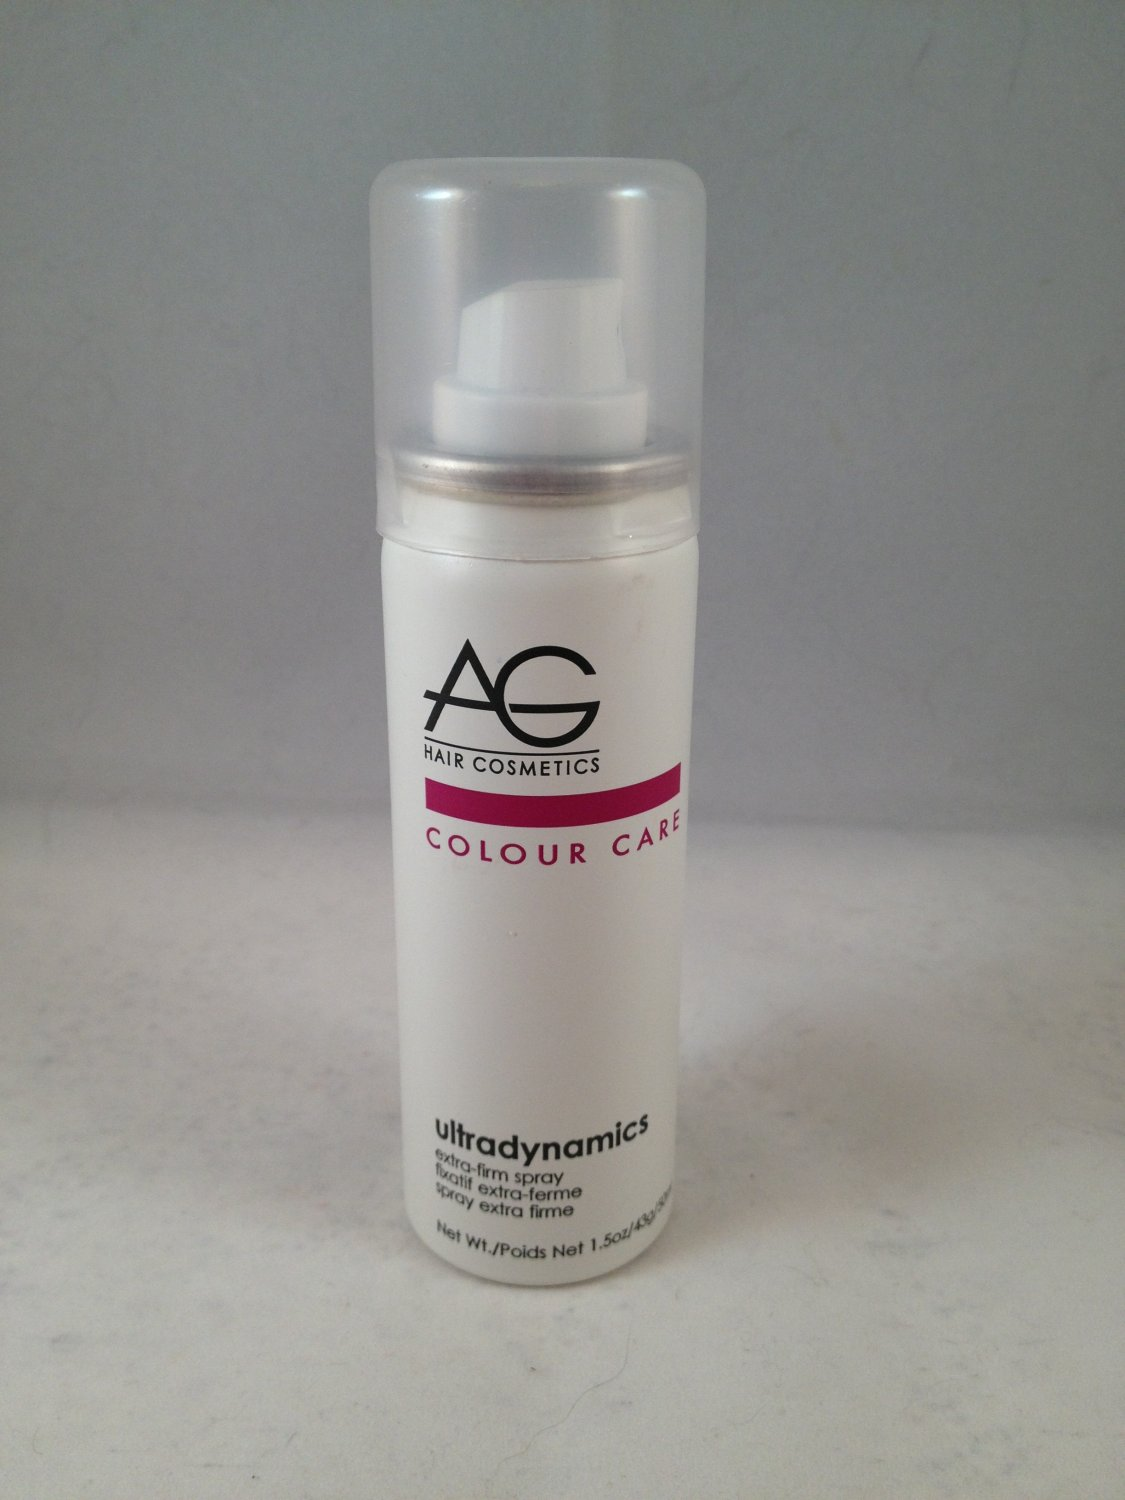 AG Hair Cosmetics Style Ultradynamics Extra-Firm Finishing Spray travel size firm